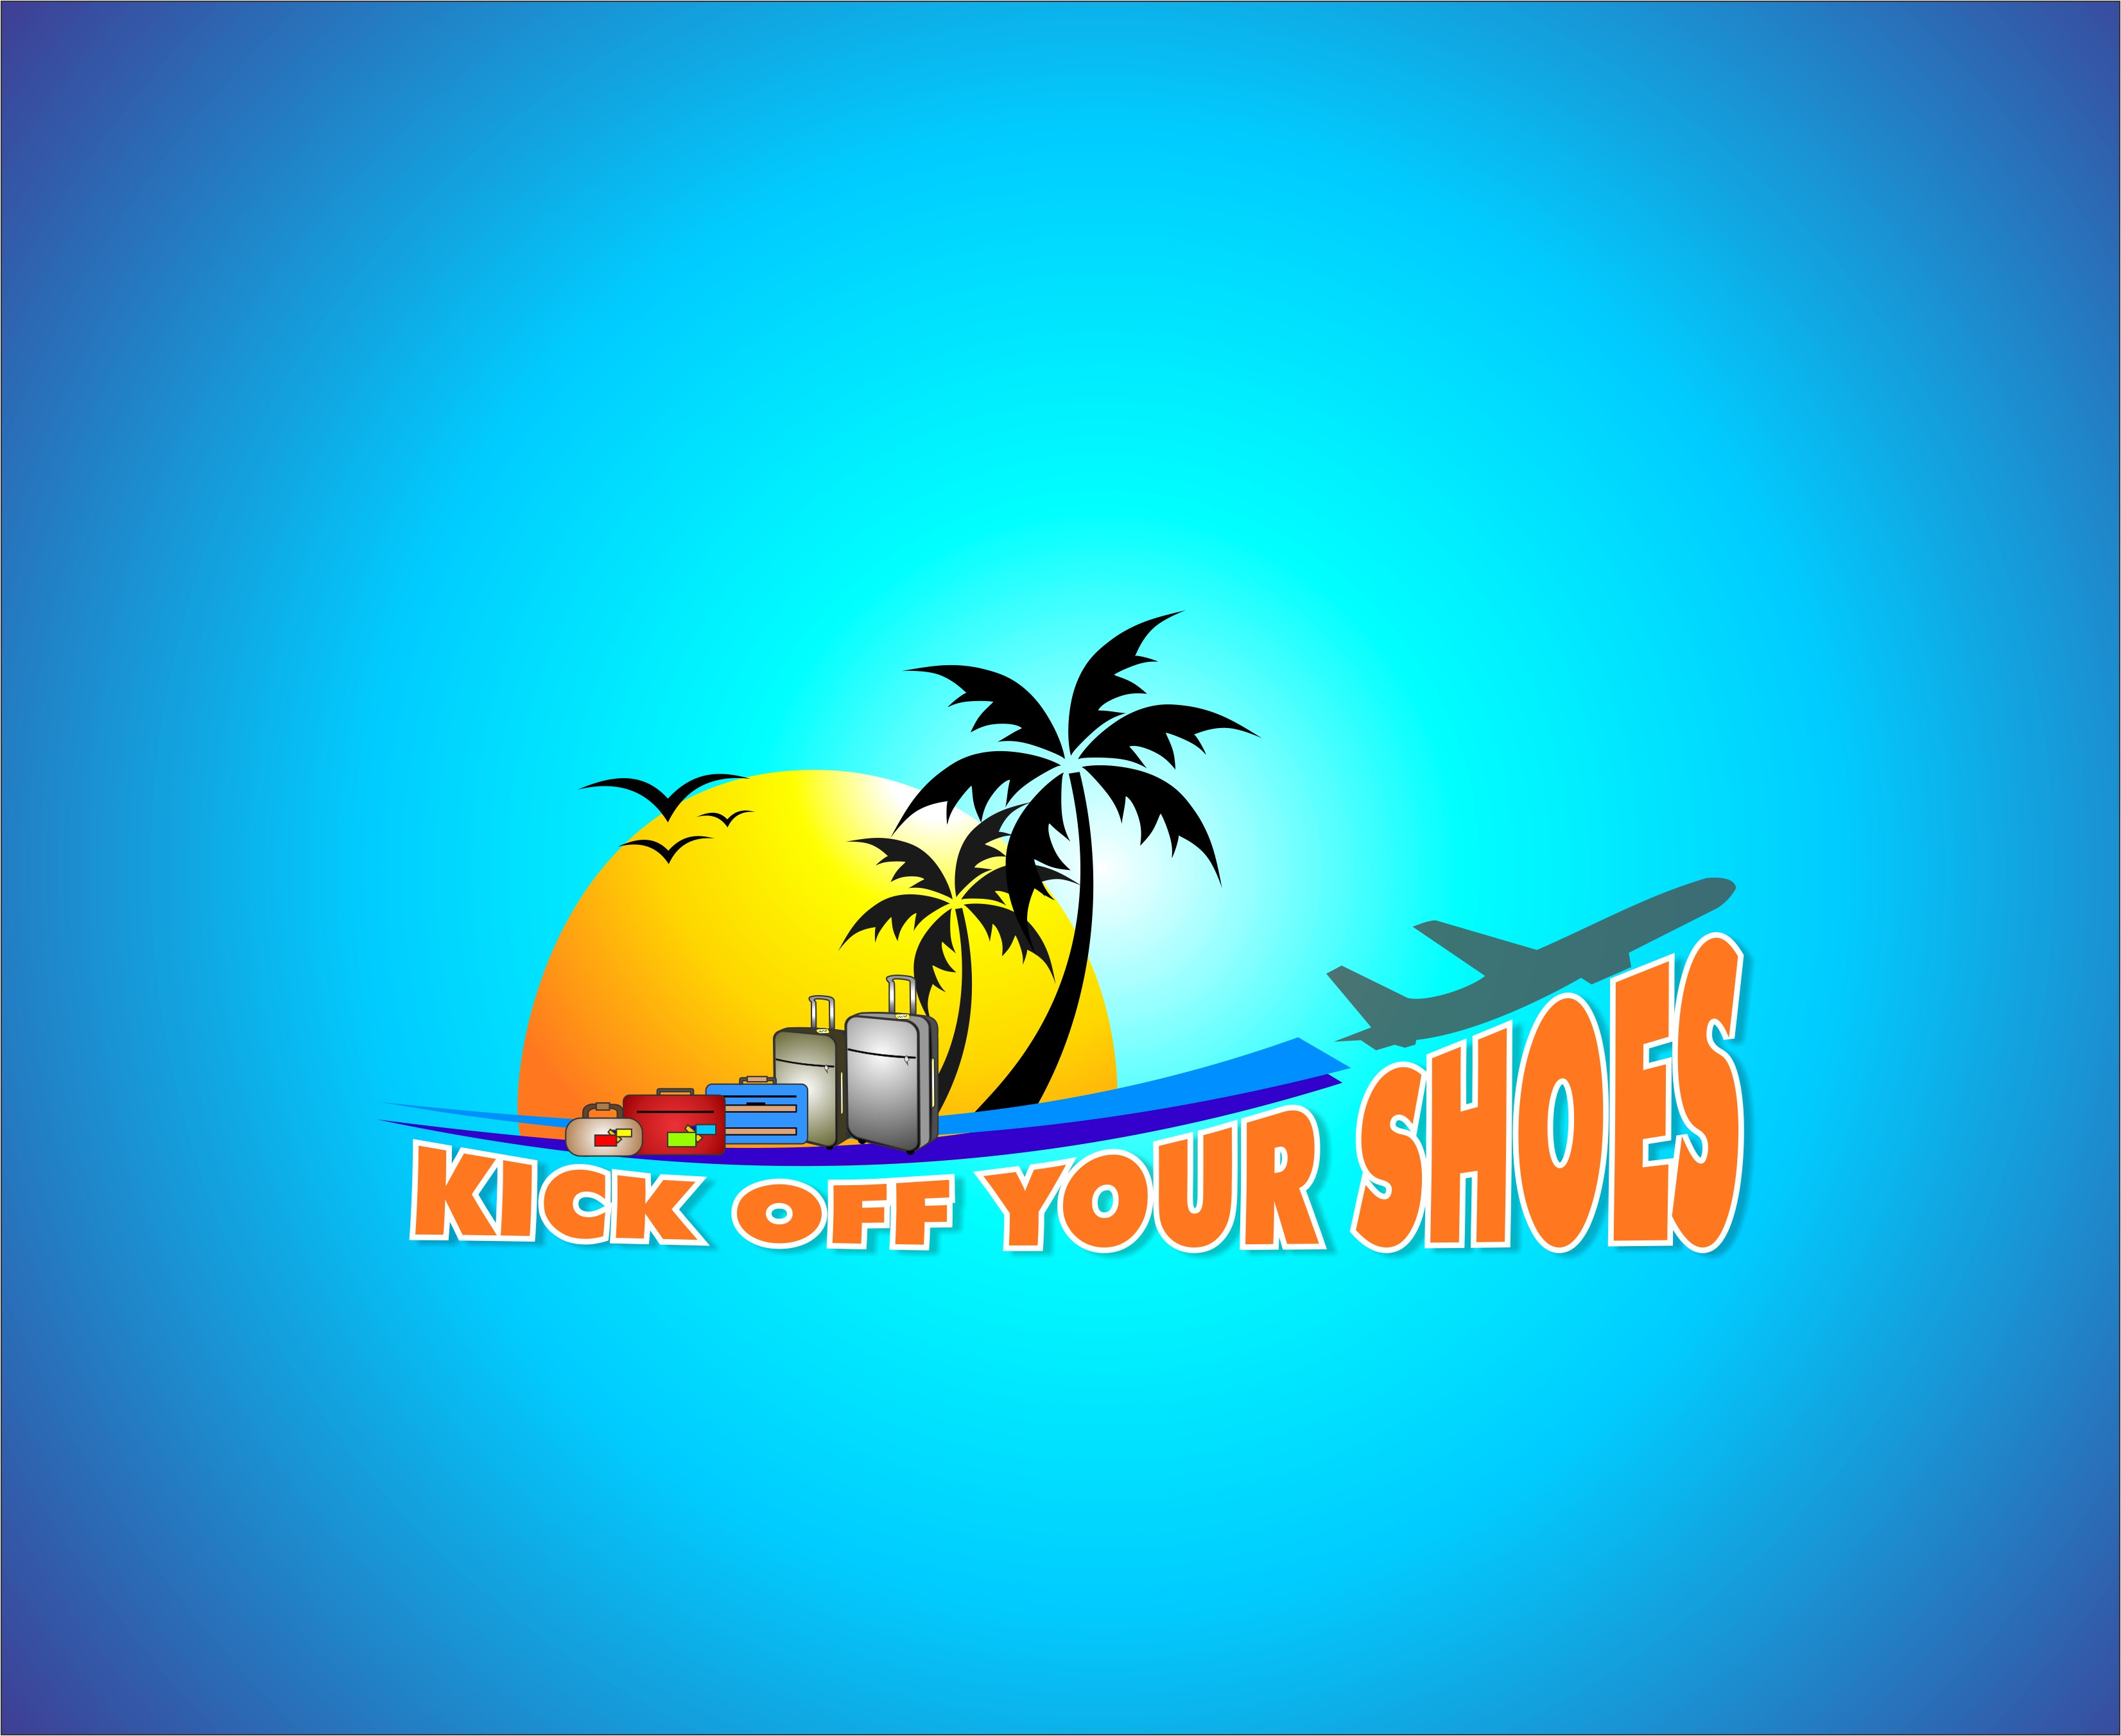 Logo Design by Mhon_Rose - Entry No. 10 in the Logo Design Contest New Logo Design for Kick Off Your Shoes.